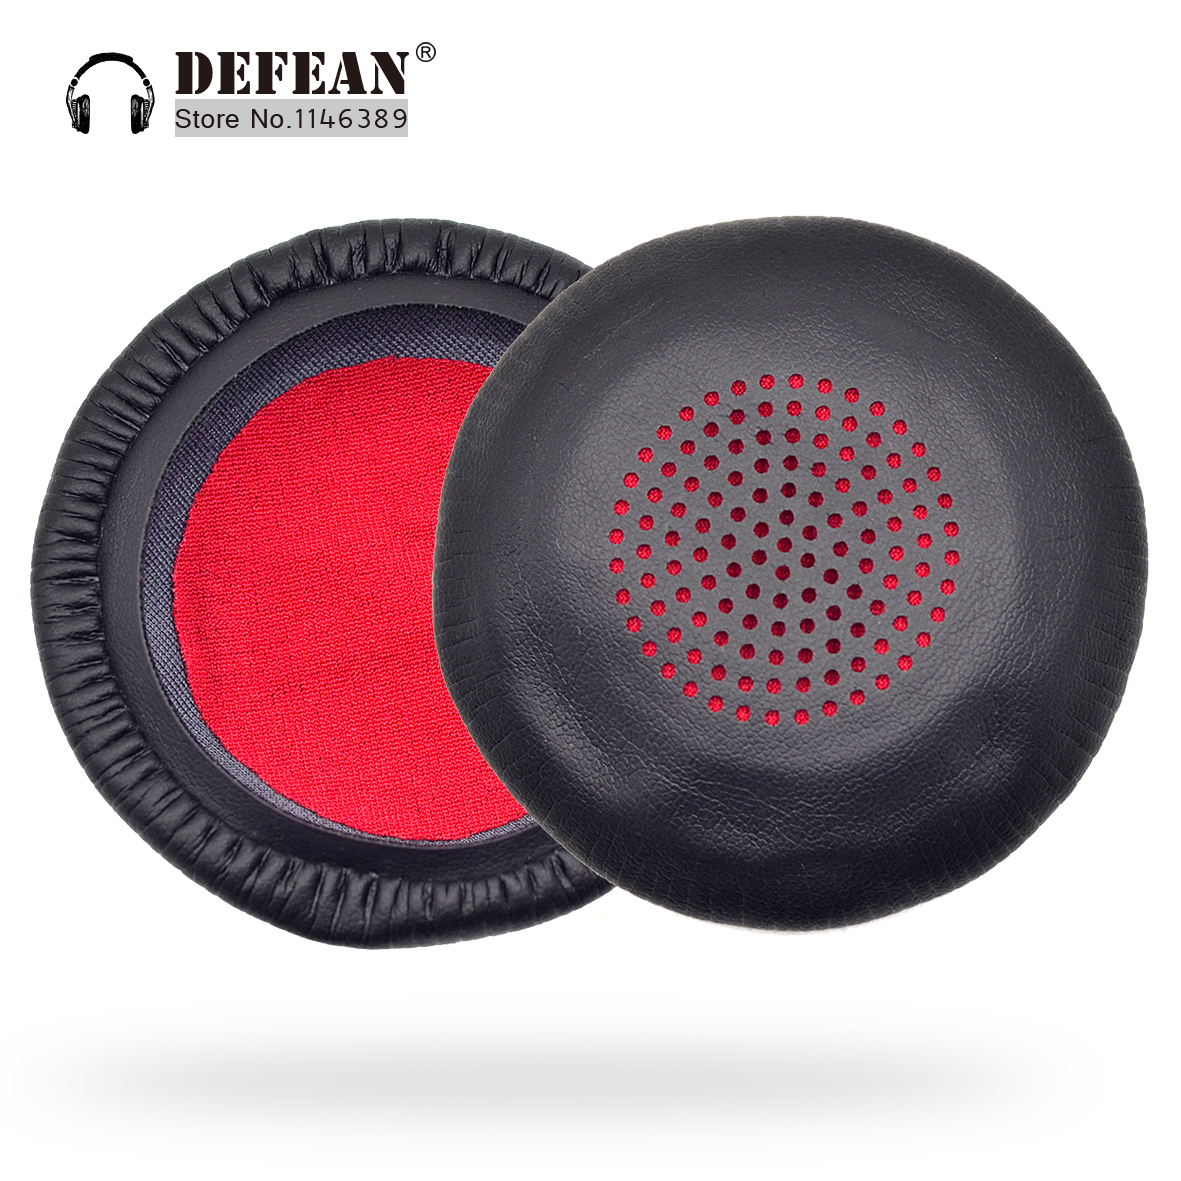 Cushion Ear Pads Covers For Plantronics Voyager Focus Uc B825 Binaural Headset Earphone Accessories Aliexpress